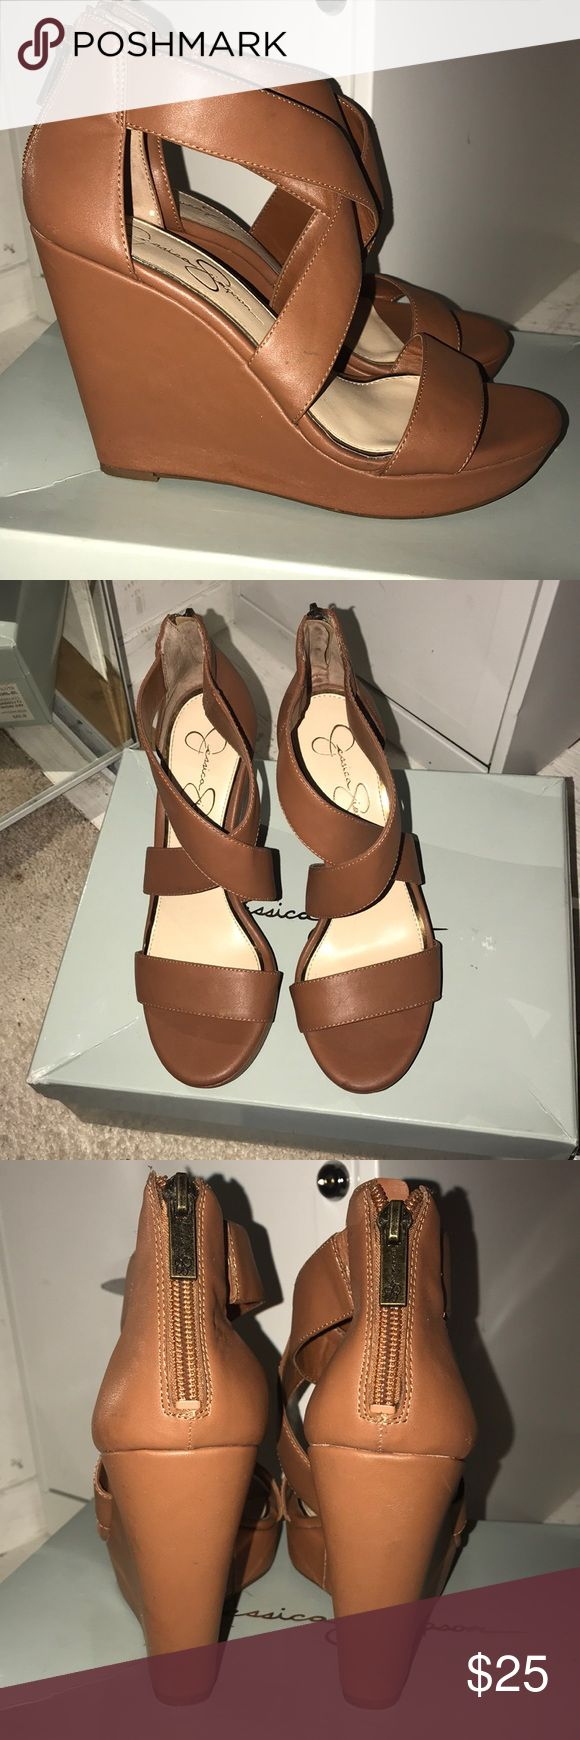 Jessica Simpson Wedges Jessica Simpson wedges in excellent condition  Worn twice.  No scuffs or stains. Jessica Simpson Shoes Wedges